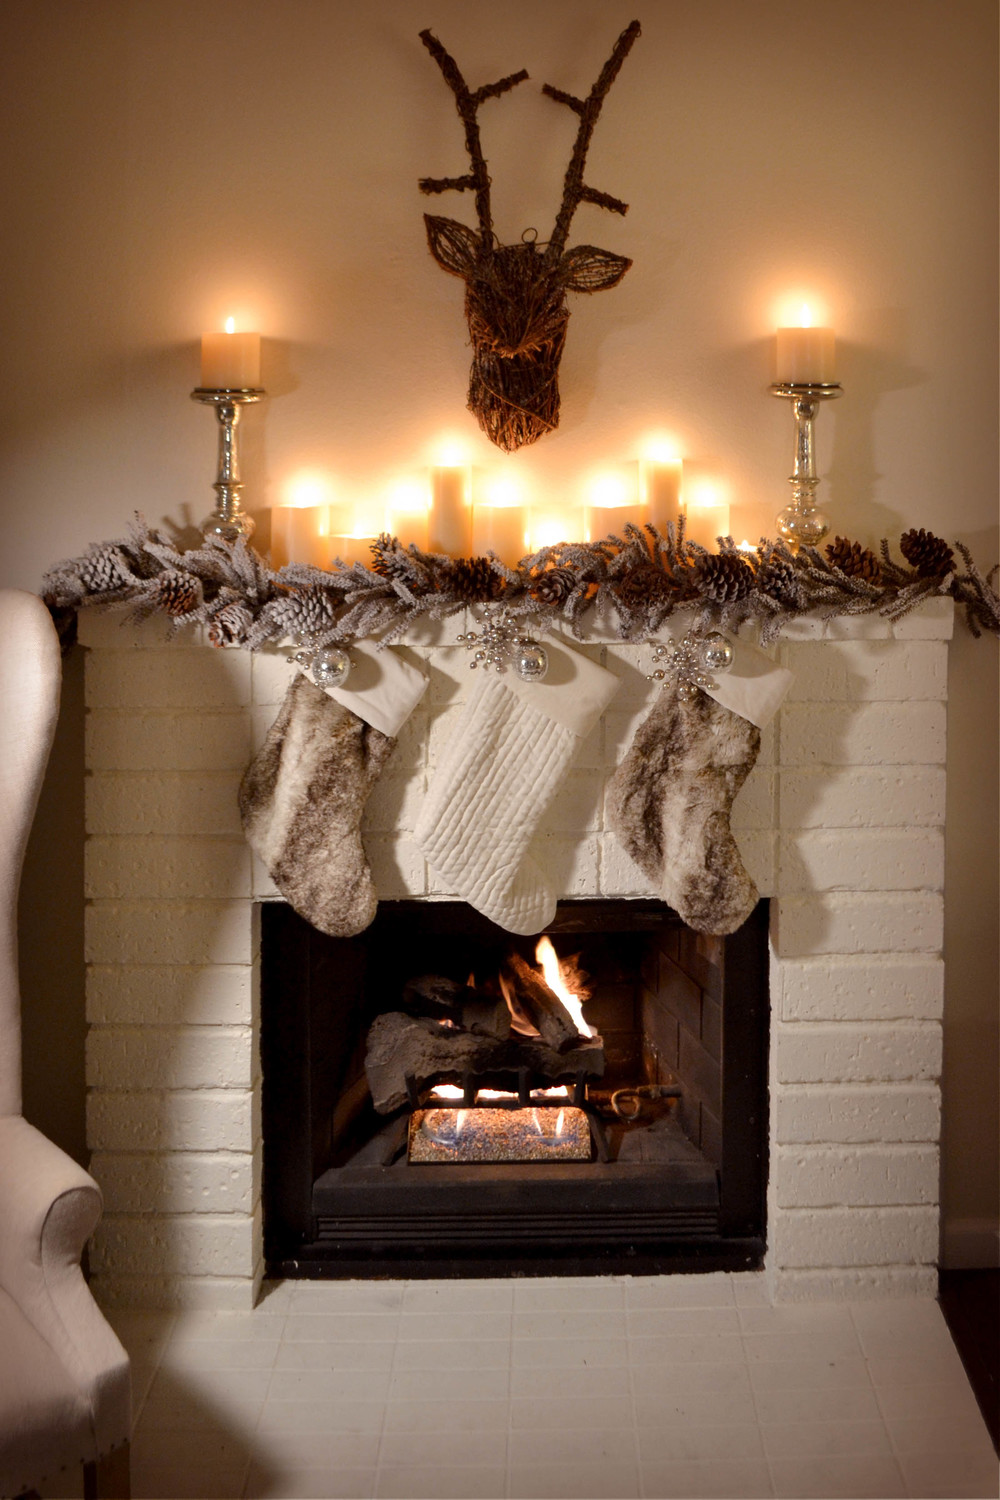 1.12_fireplace_wcc_12_13.jpg